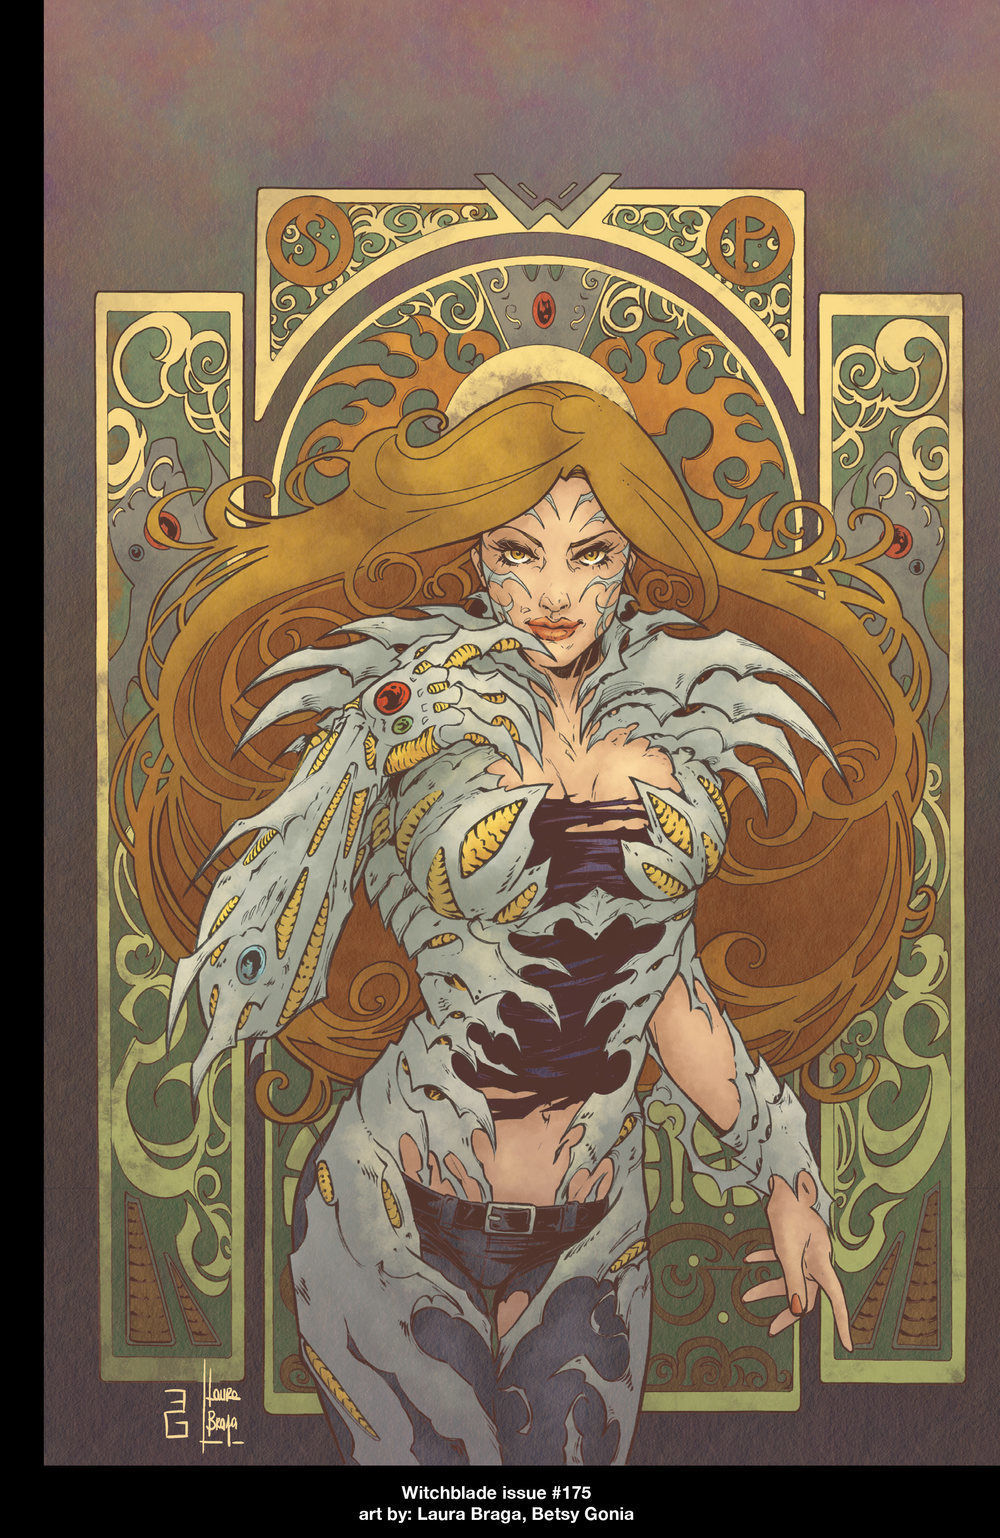 【The Art of Witchblade-魔女之刃】 (9).jpg